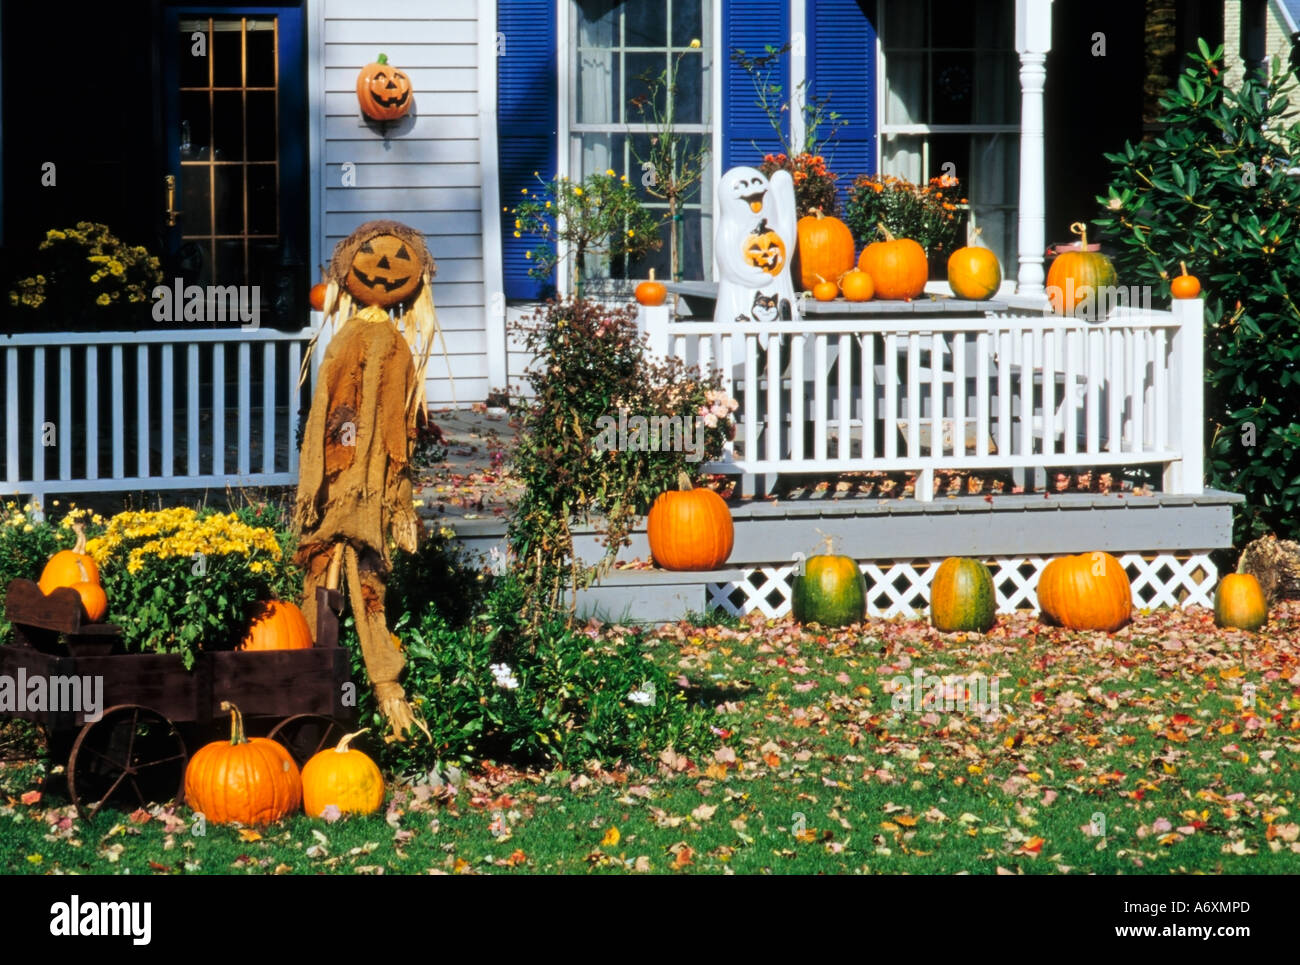 halloween decorations millerton dutchess county new york state usa